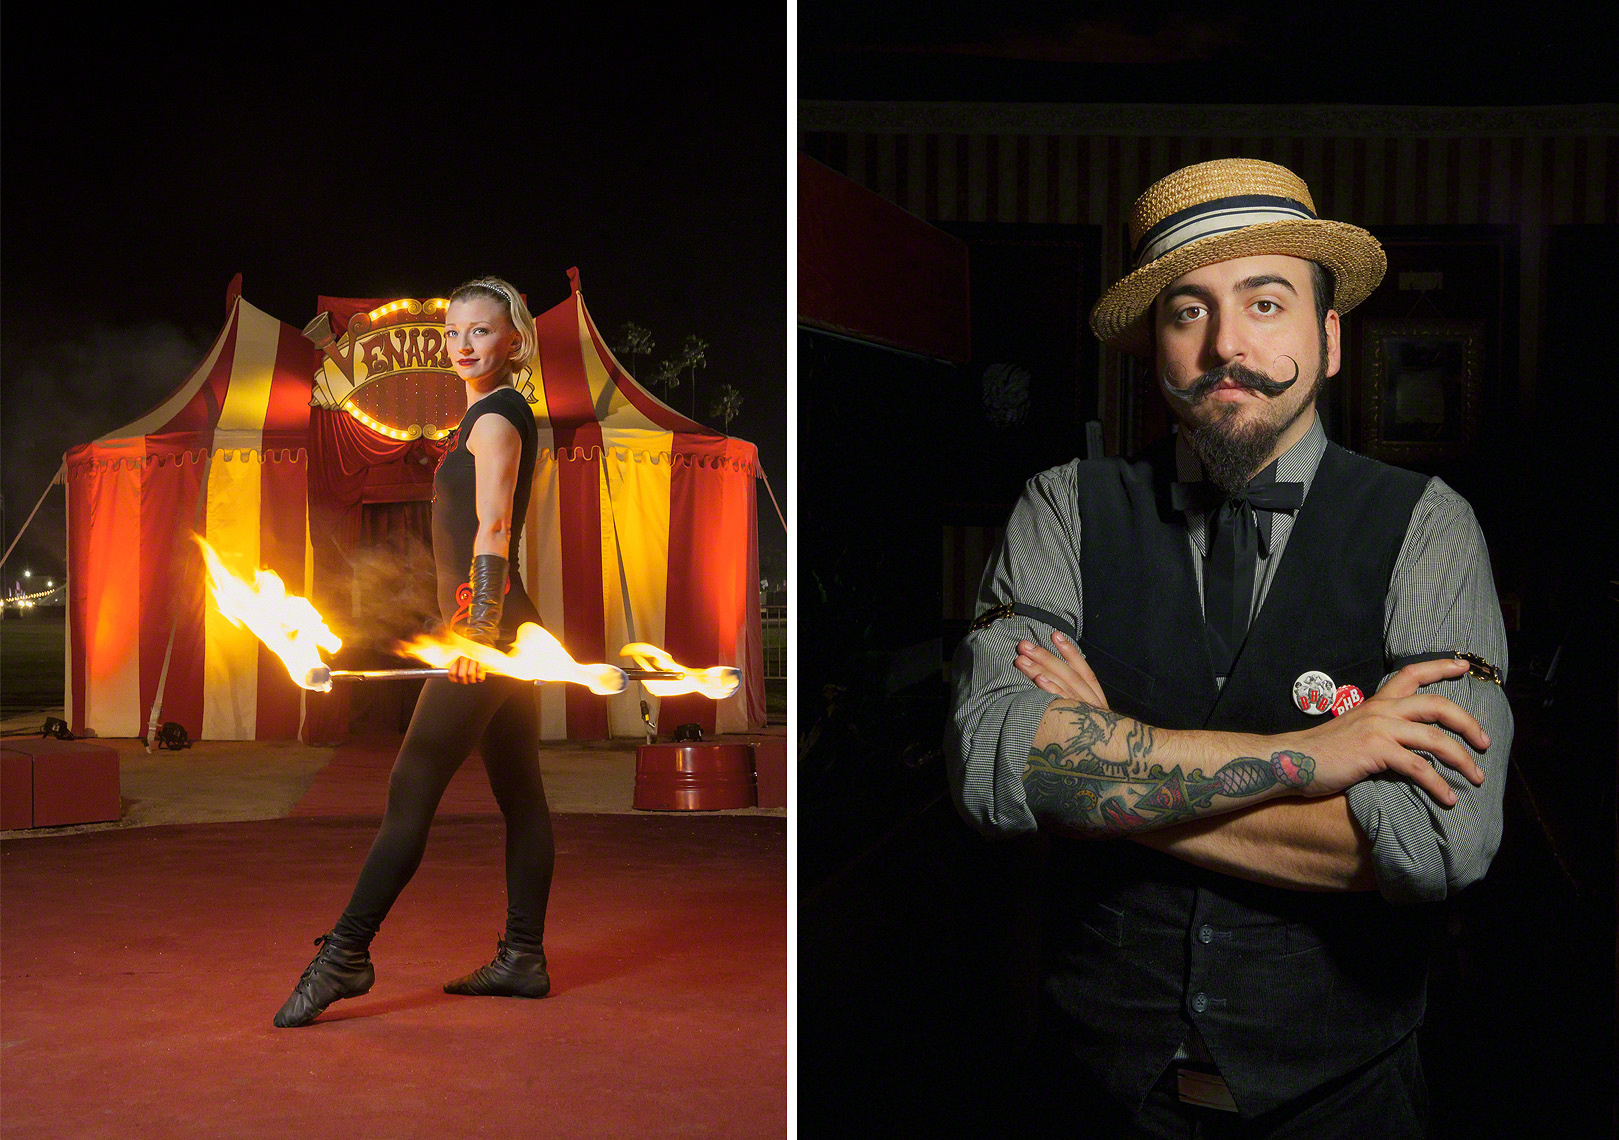 The Fire Spinner and Tattoo Artist